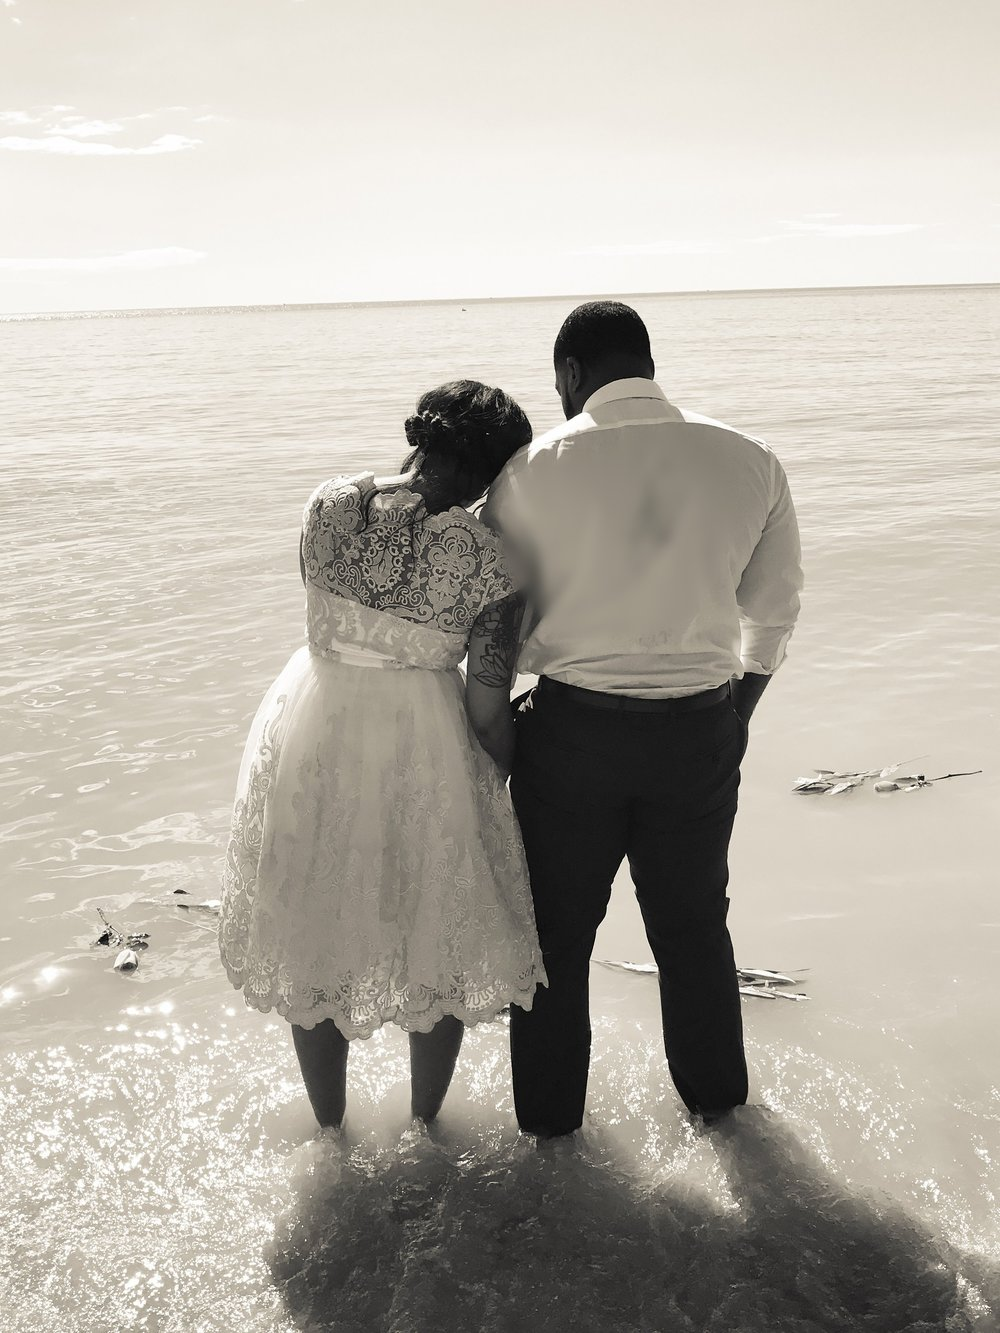 Our wedding day , we put white lilies and pink roses in the ocean for our baby girl.